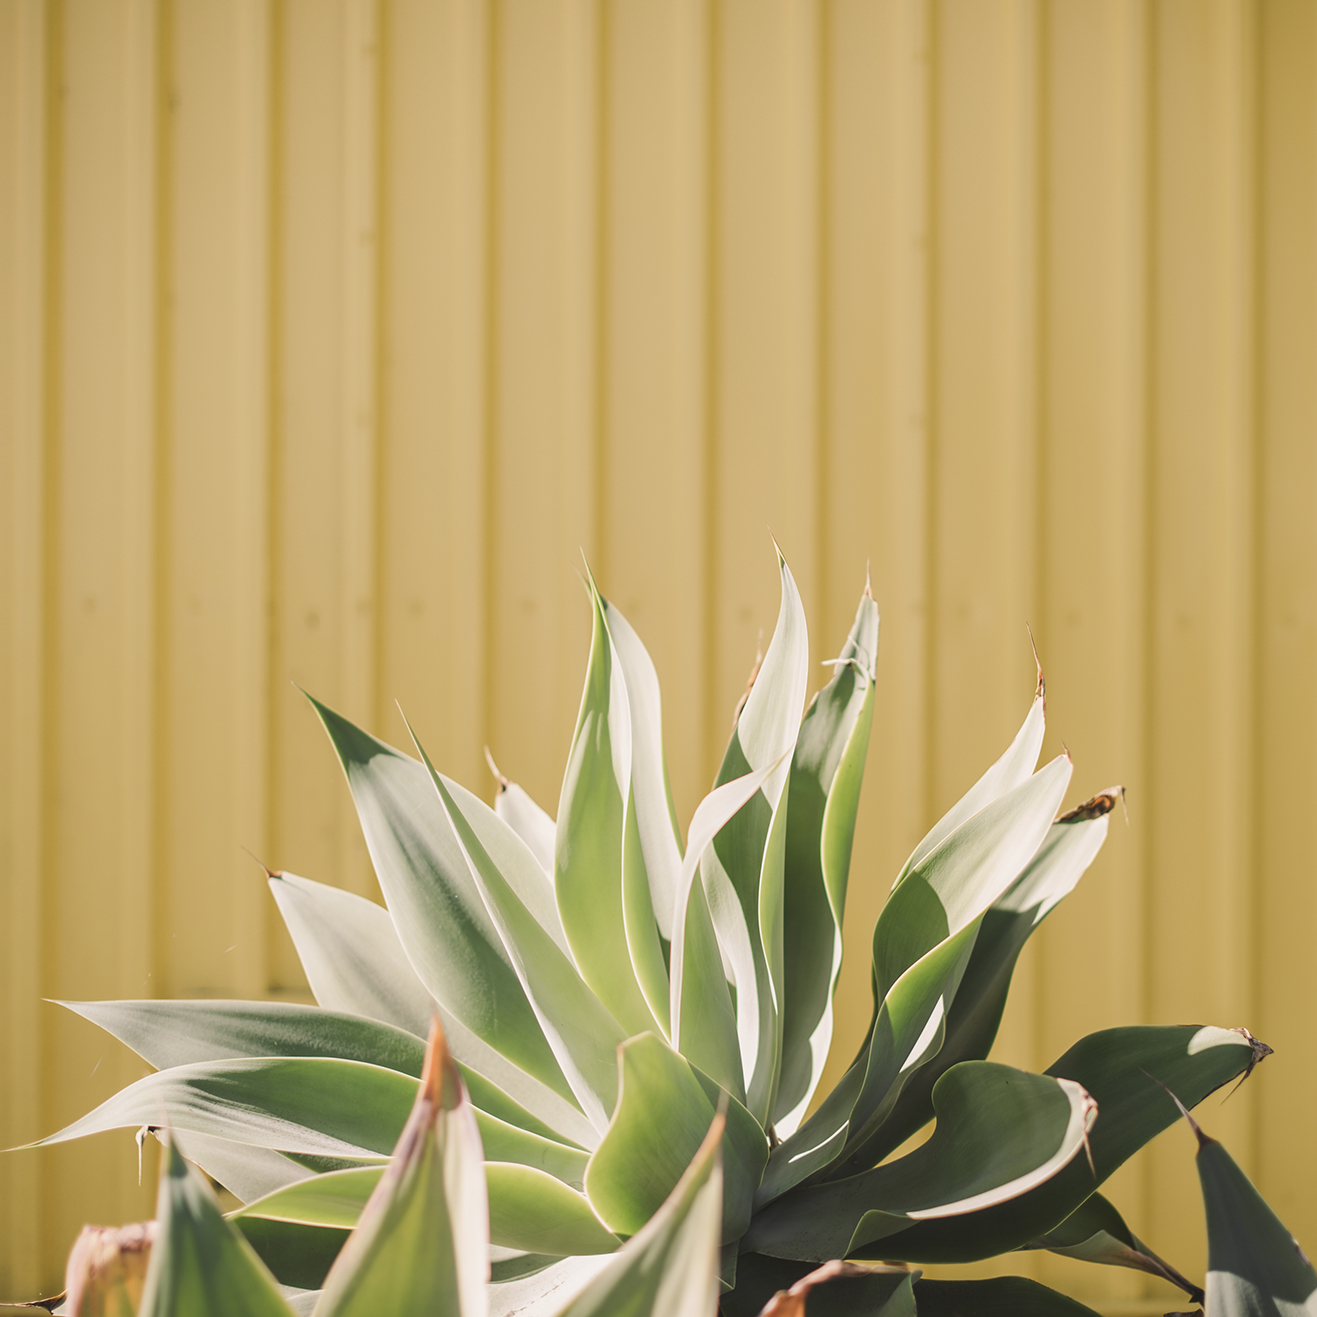 Los-Angeles-Travel-Photographer-Stacey-Lamb-Succulent-Yellow